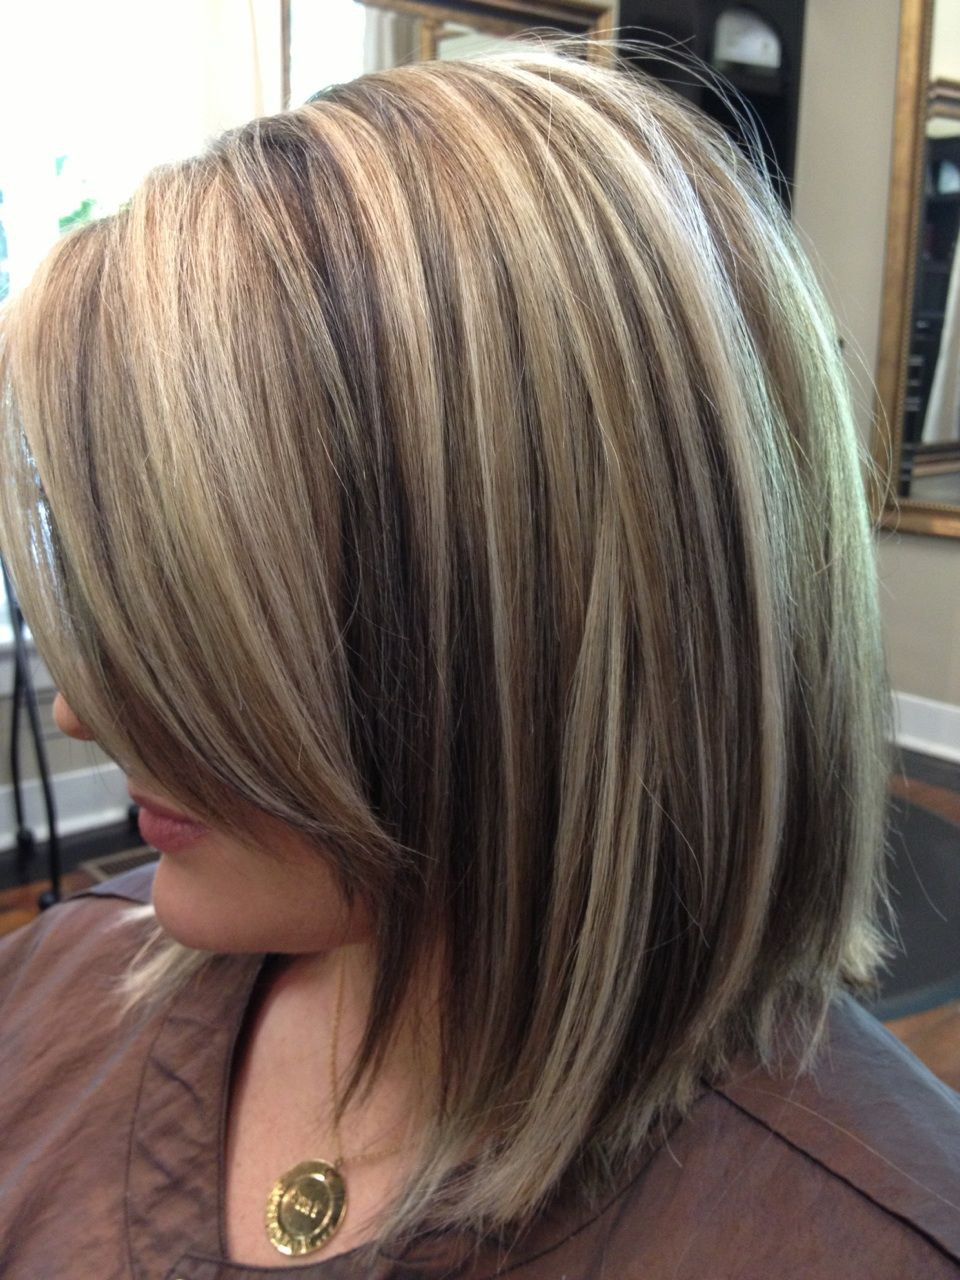 10 Bombshell Blonde Highlights On Brown Hair Blondes Hair